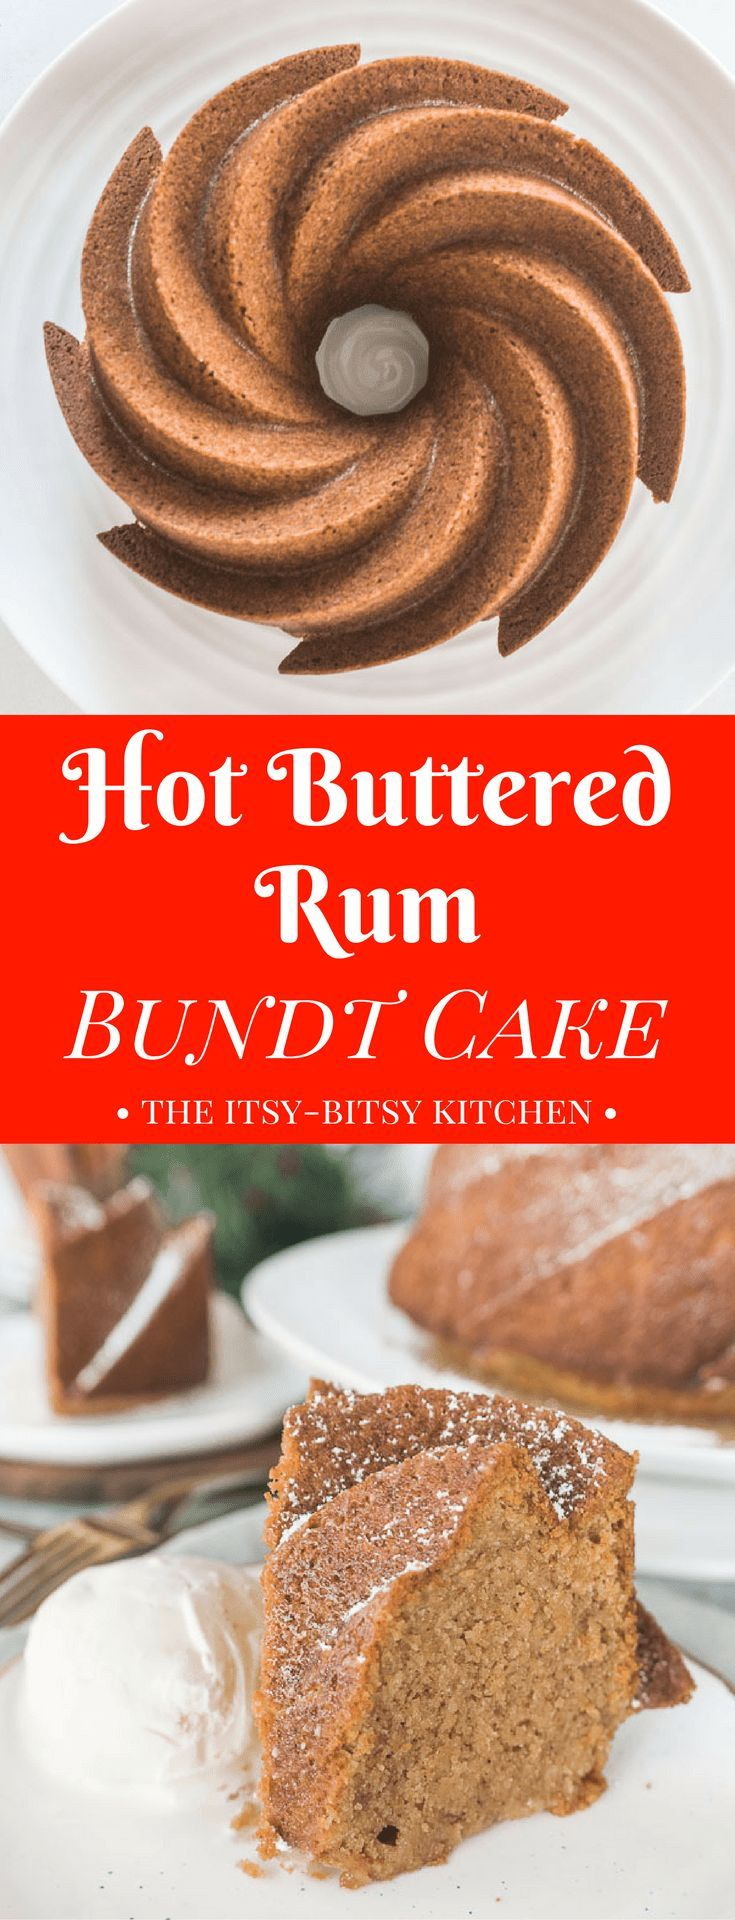 This hot buttered rum cake is a boozy winter dessert and it's made with a cake mix to make your life extra easy. recipe via itsybitsykitchen.com #bundtcake #boozycake #rumcake